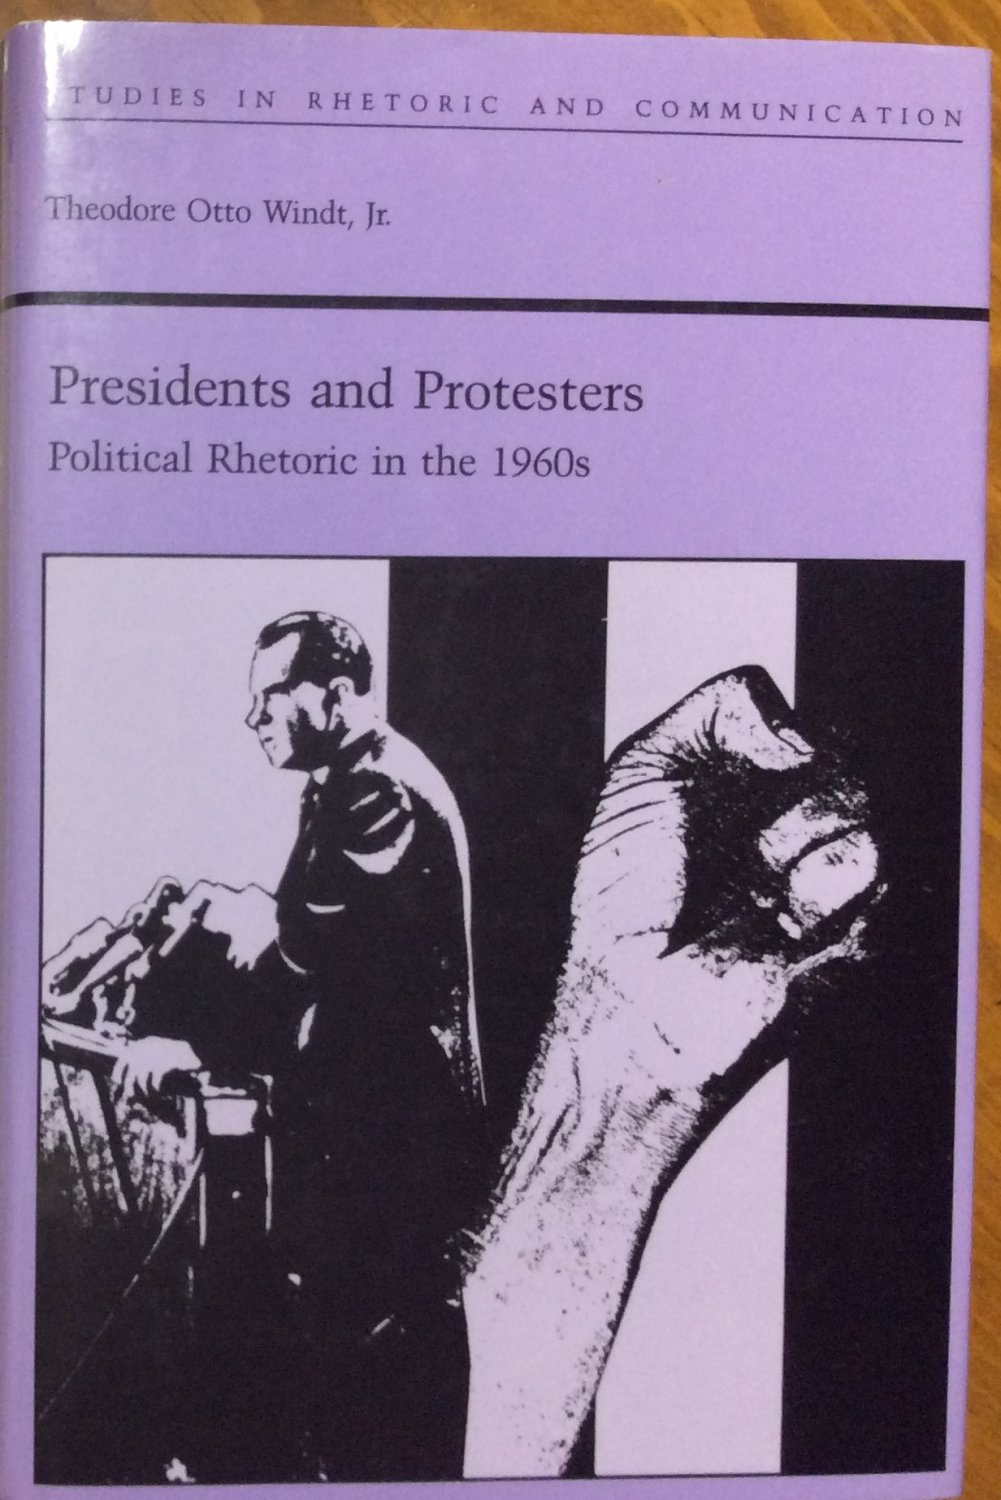 Book PRESIDENTS AND PROTESTORS: POLITICAL RHETORIC IN THE 1960S Otto Wendt HC 1ED Rhetoric Studies